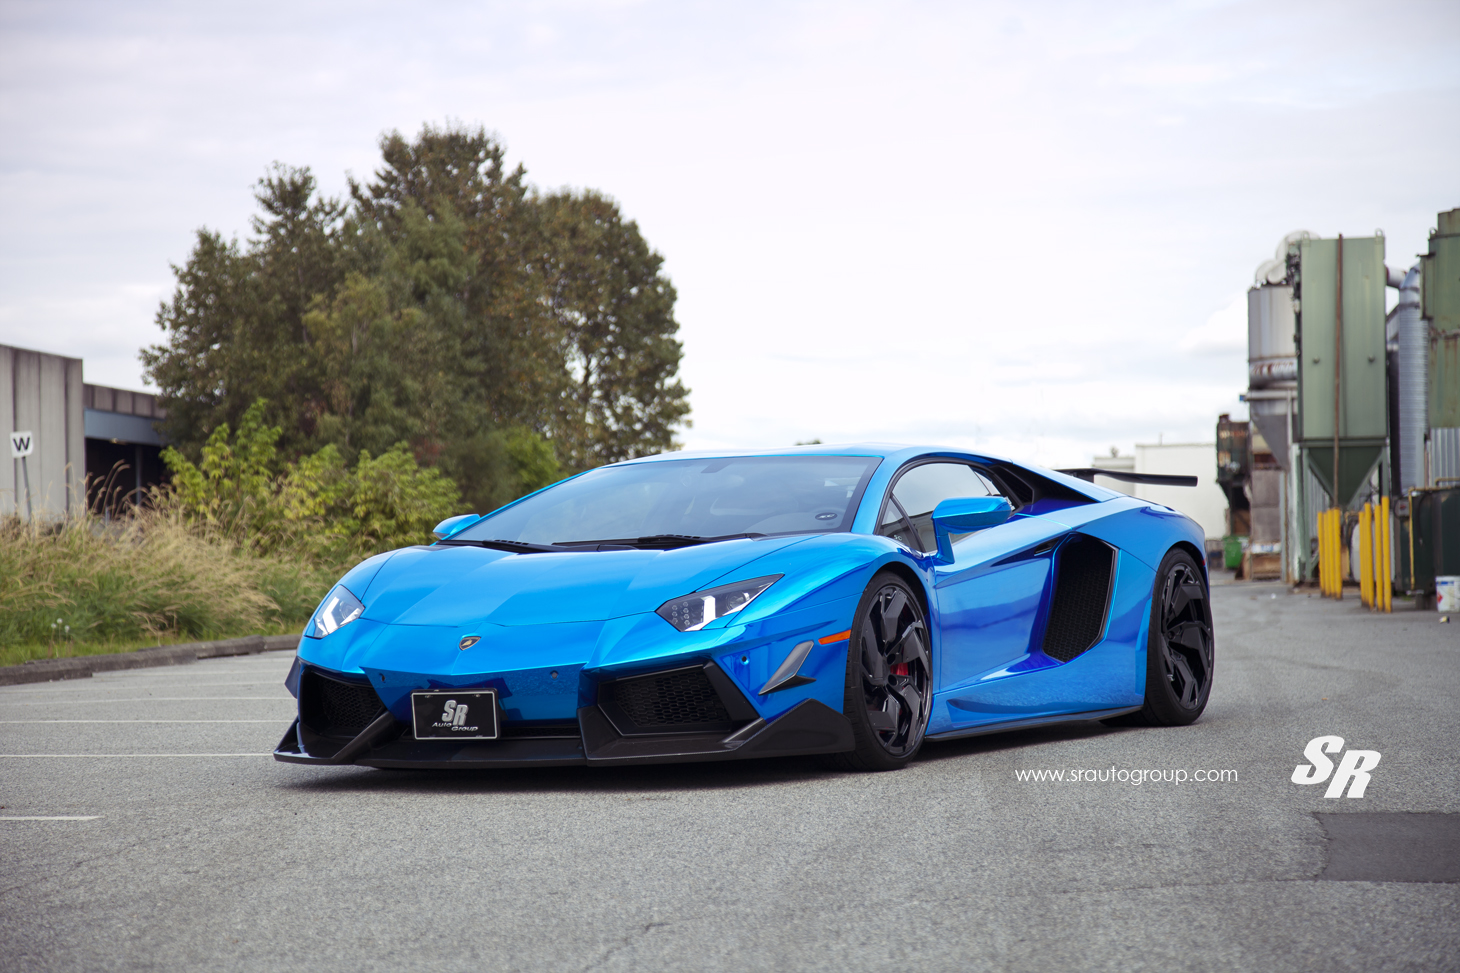 Bright Blue Lamborghini Aventador By Sr Auto Group And Pur Wheels